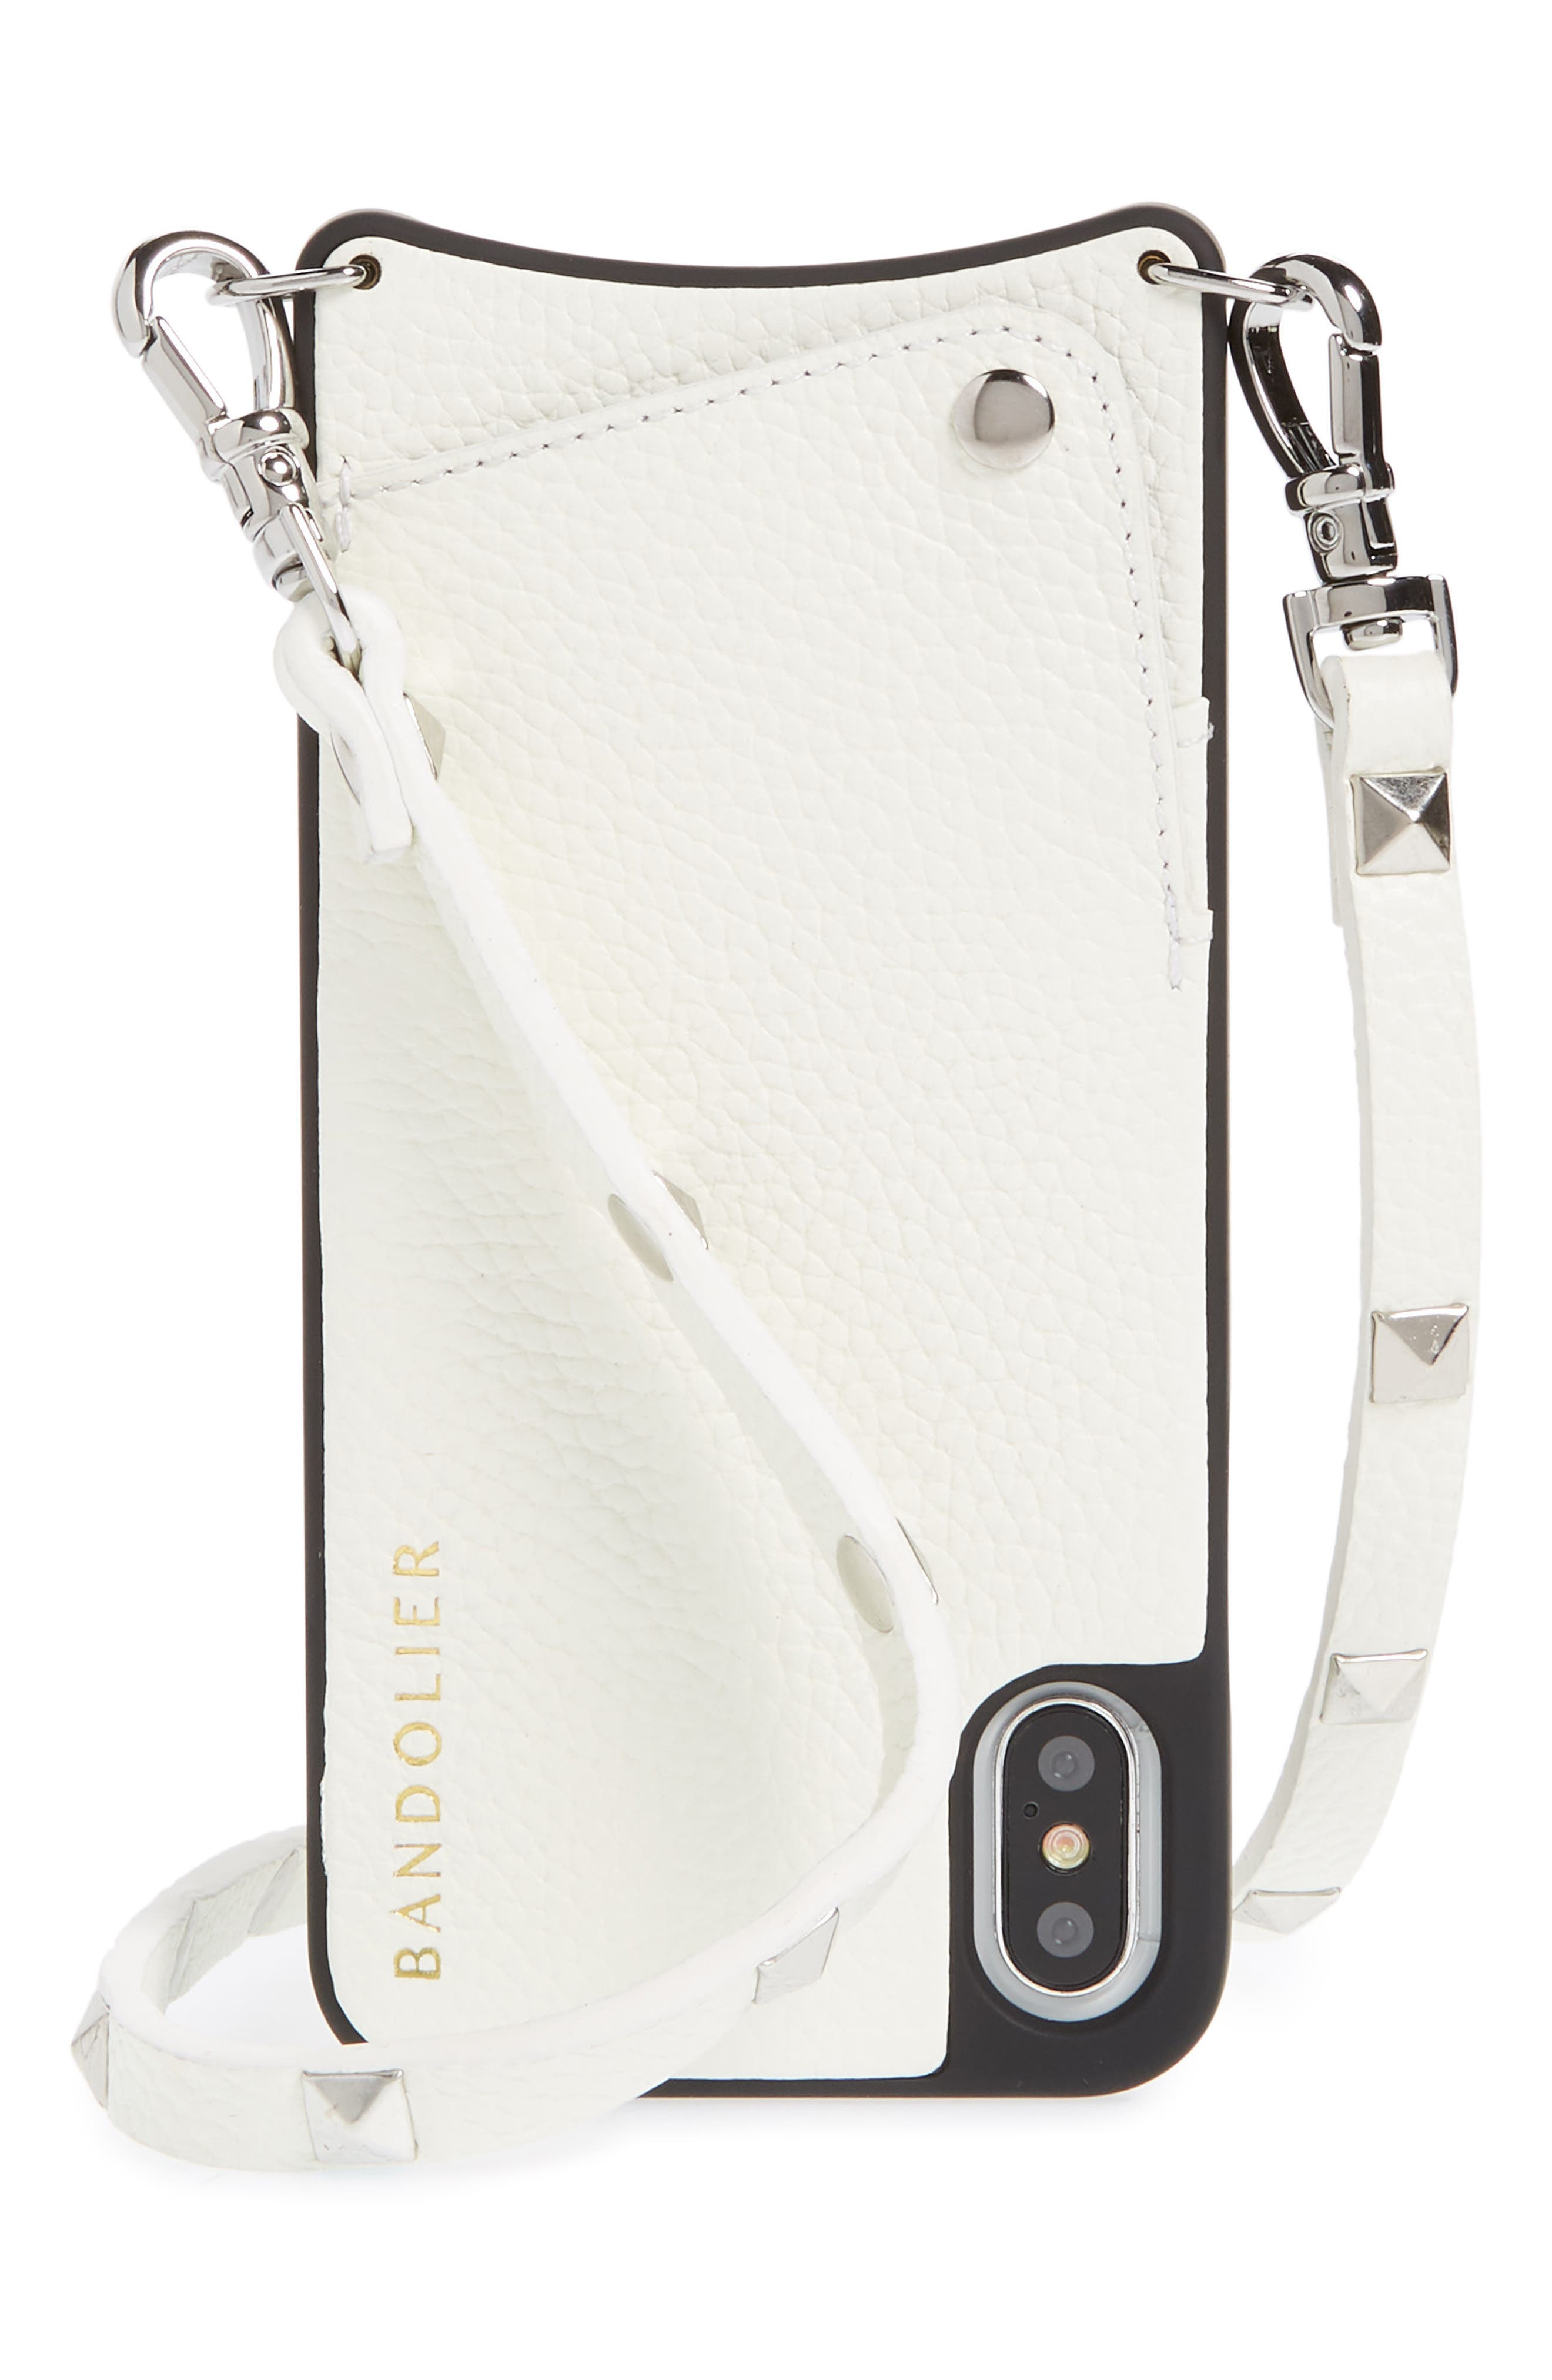 Sarah Leather iPhone X Crossbody Case,                             Main thumbnail 1, color,                             White/ Silver